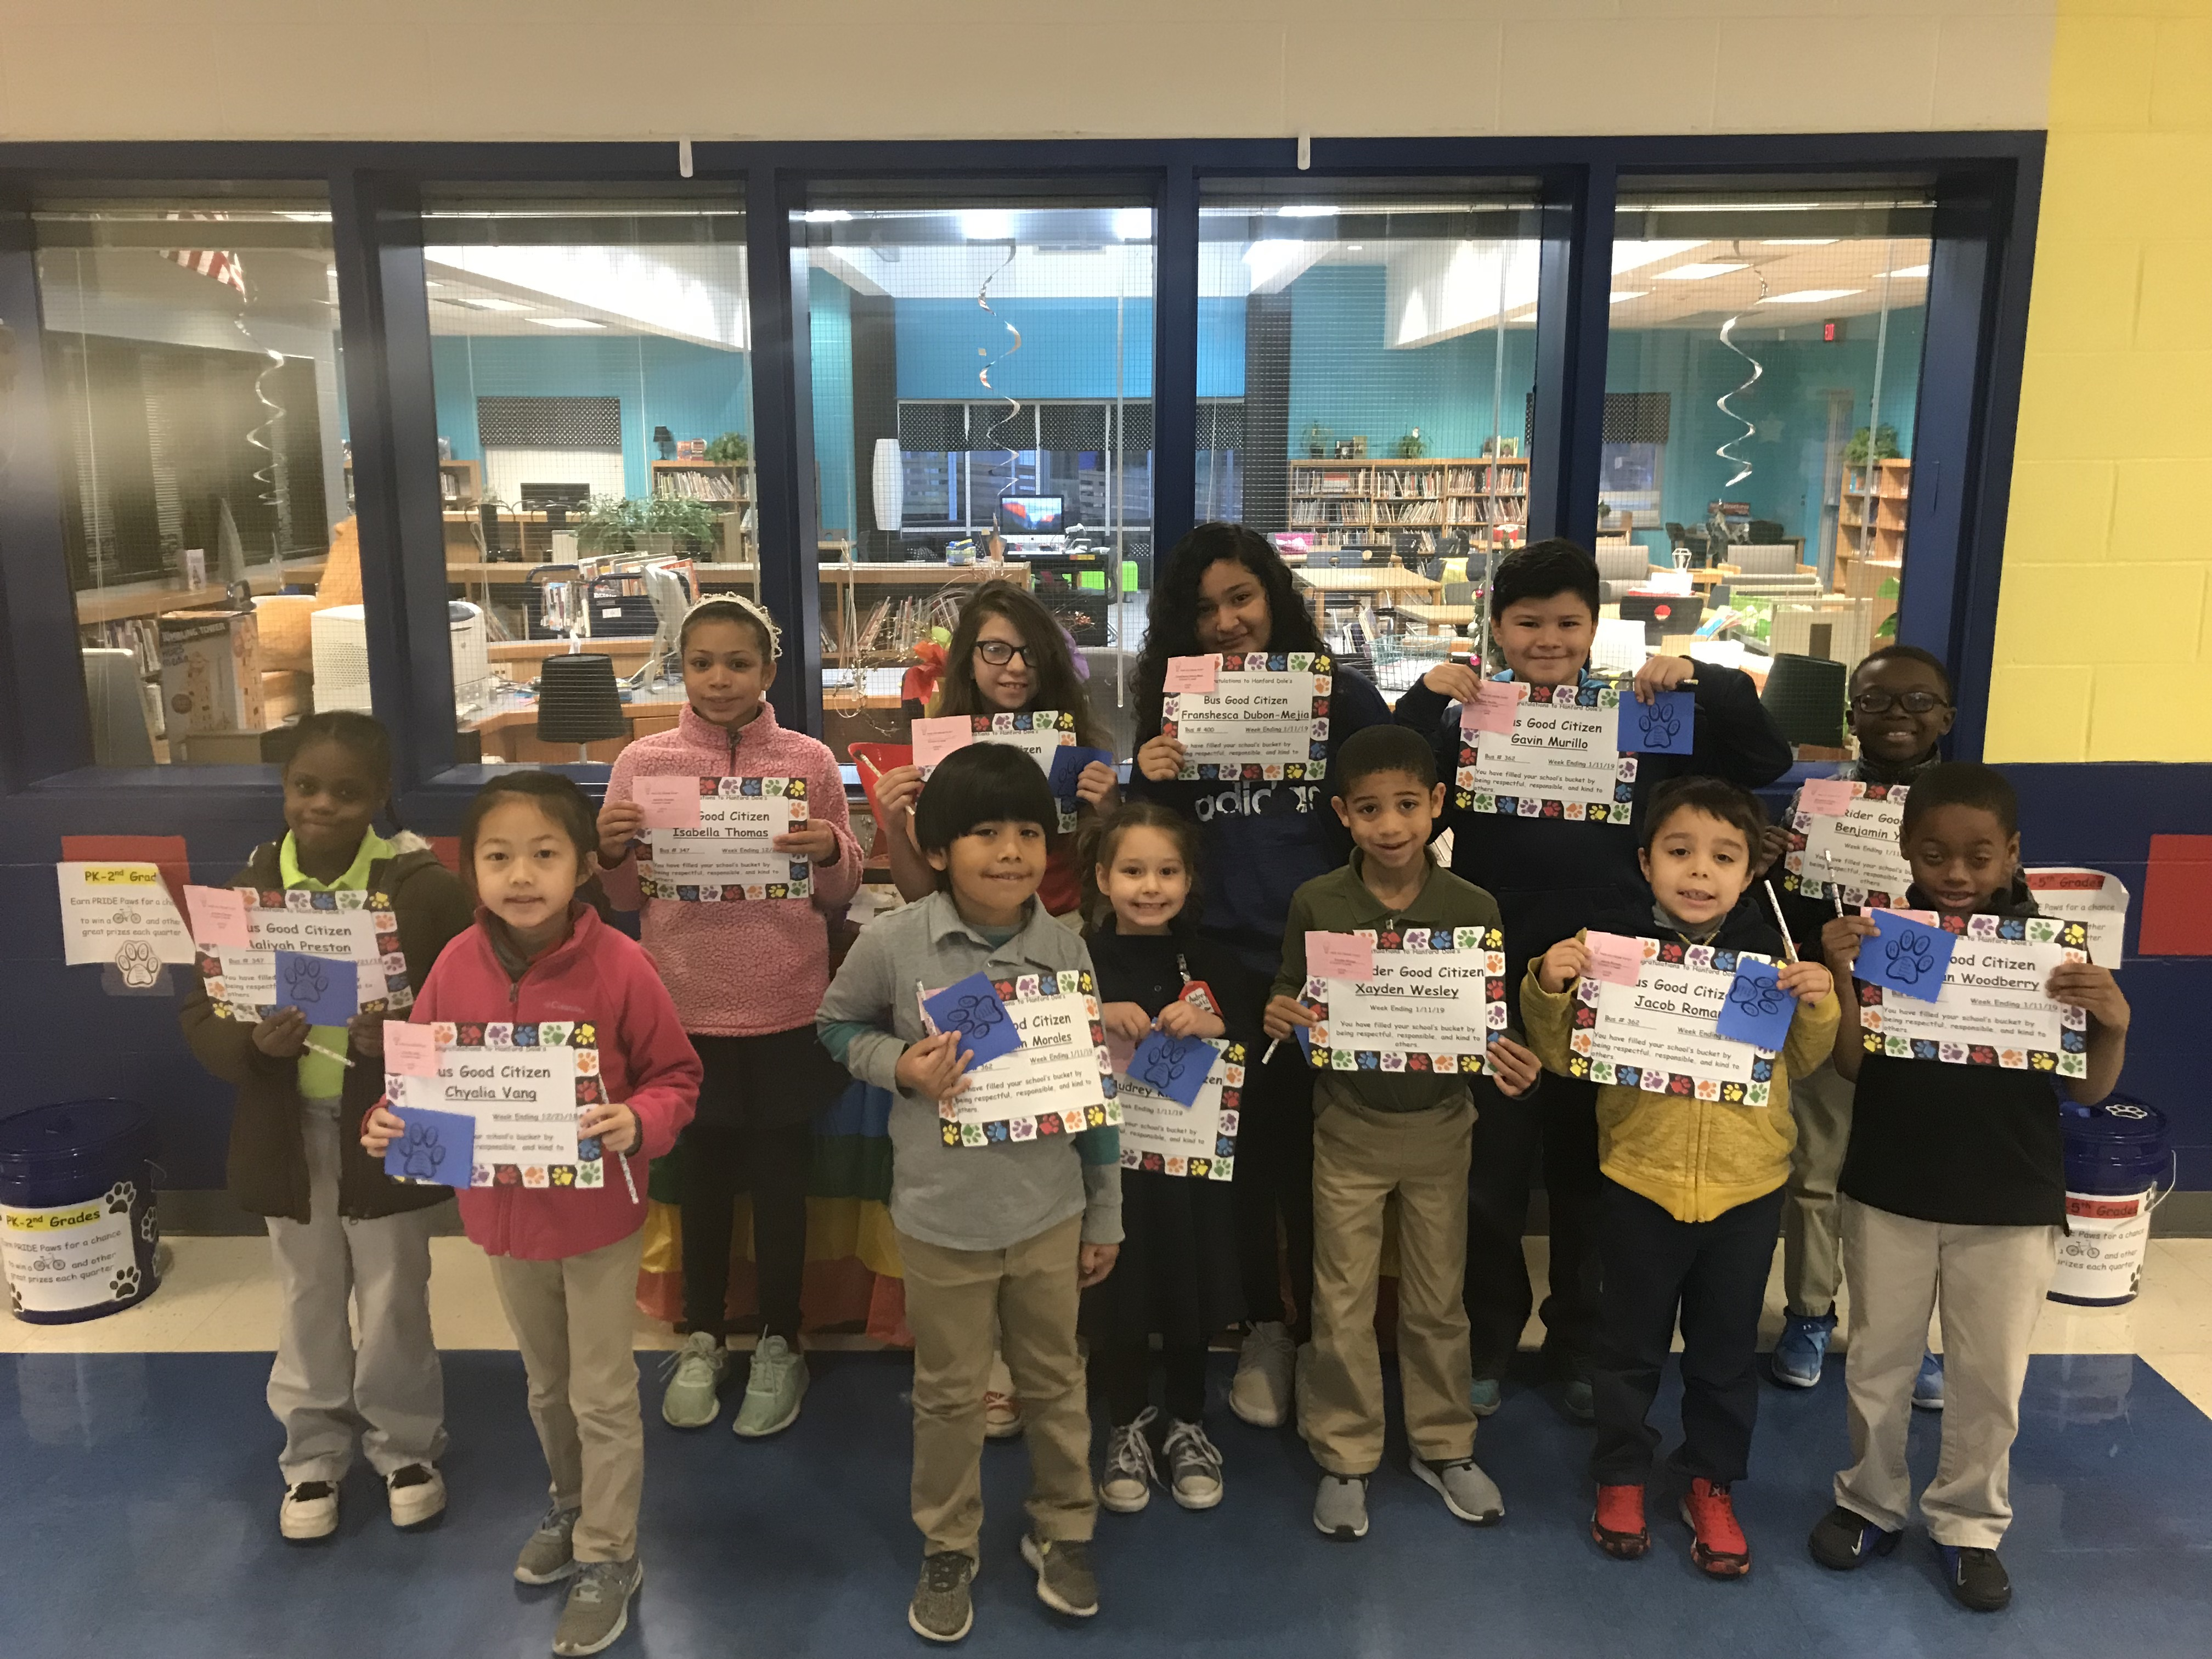 Bus and Car Good Citizens for Week of 1/11/19